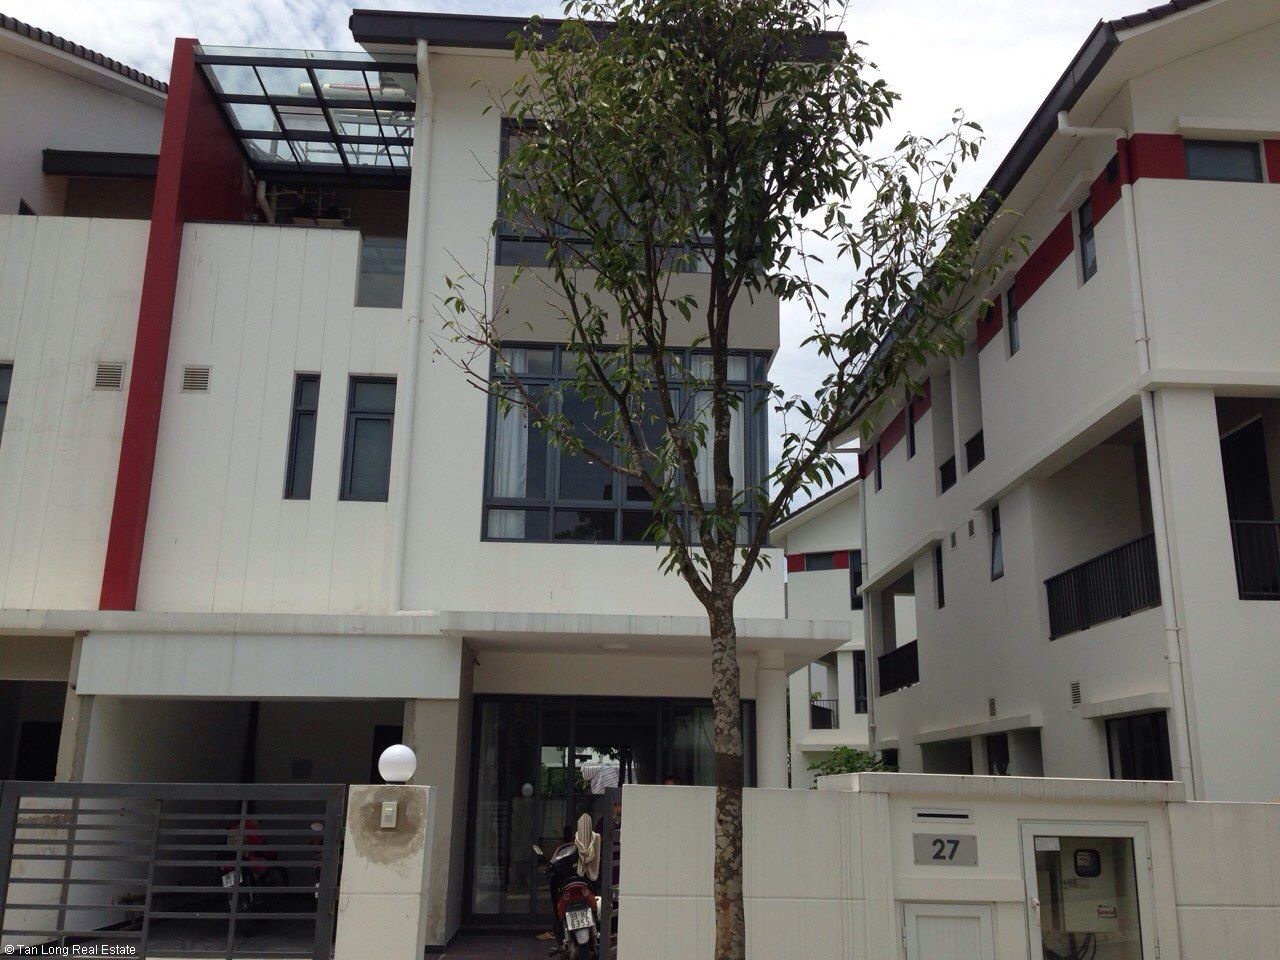 Furnished 05 bedrooms house for rent in Gamuda, Nguyen Xien street, Hoang Mai district. 2